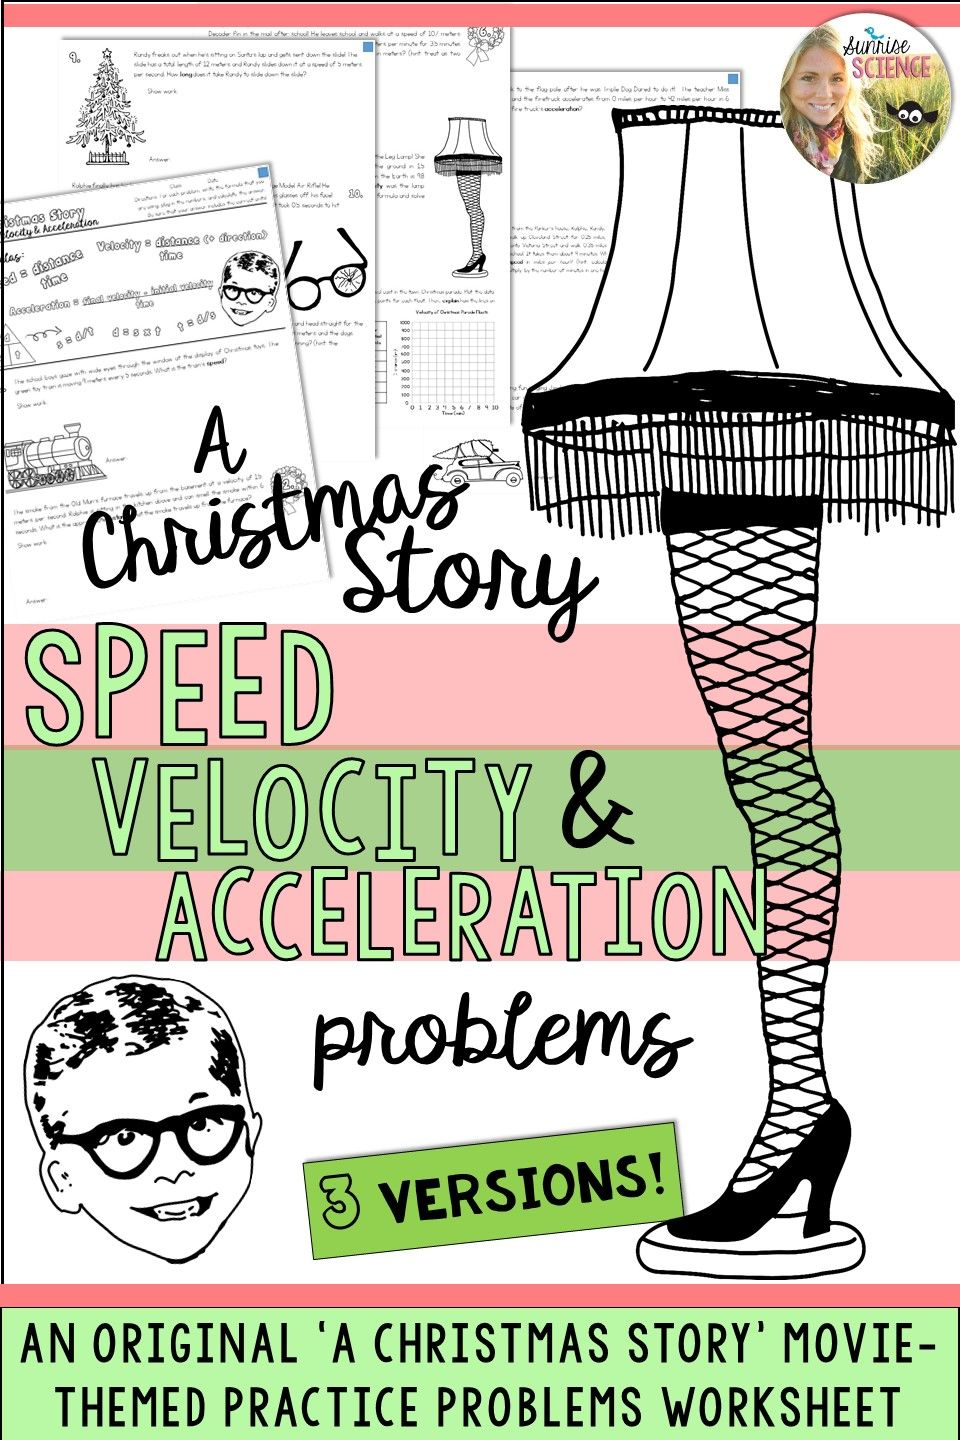 worksheet Velocity Practice Problems Worksheet speed velocity acceleration motion a christmas story physics practice problems